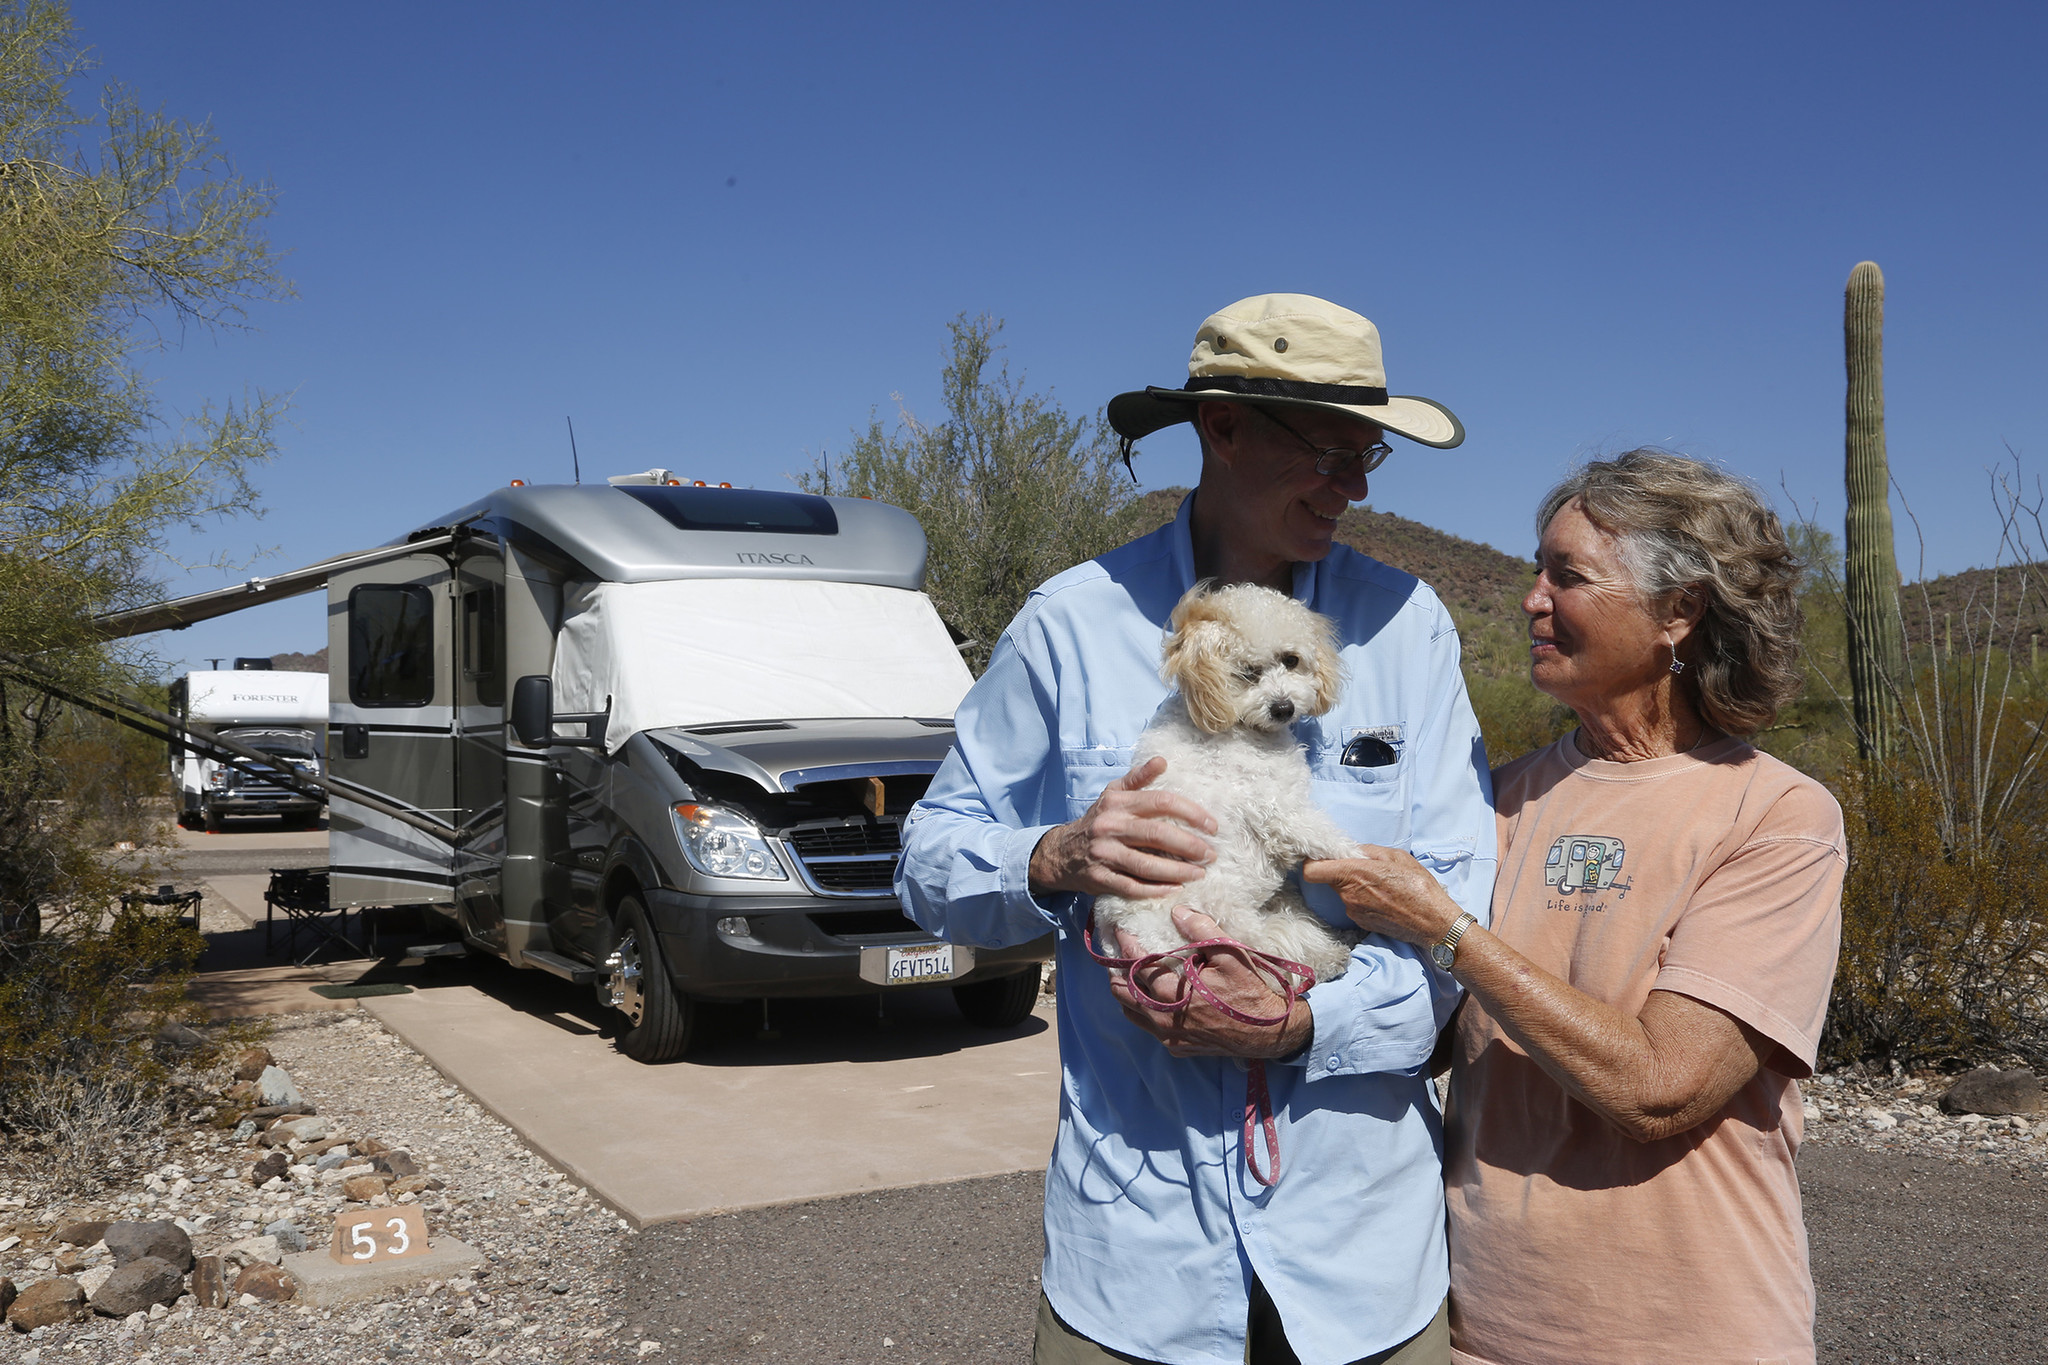 San Diego residents Frank Yancey and Barbara Deese stand with their dog Sophie at a campground at Organ Pipe National Monument.